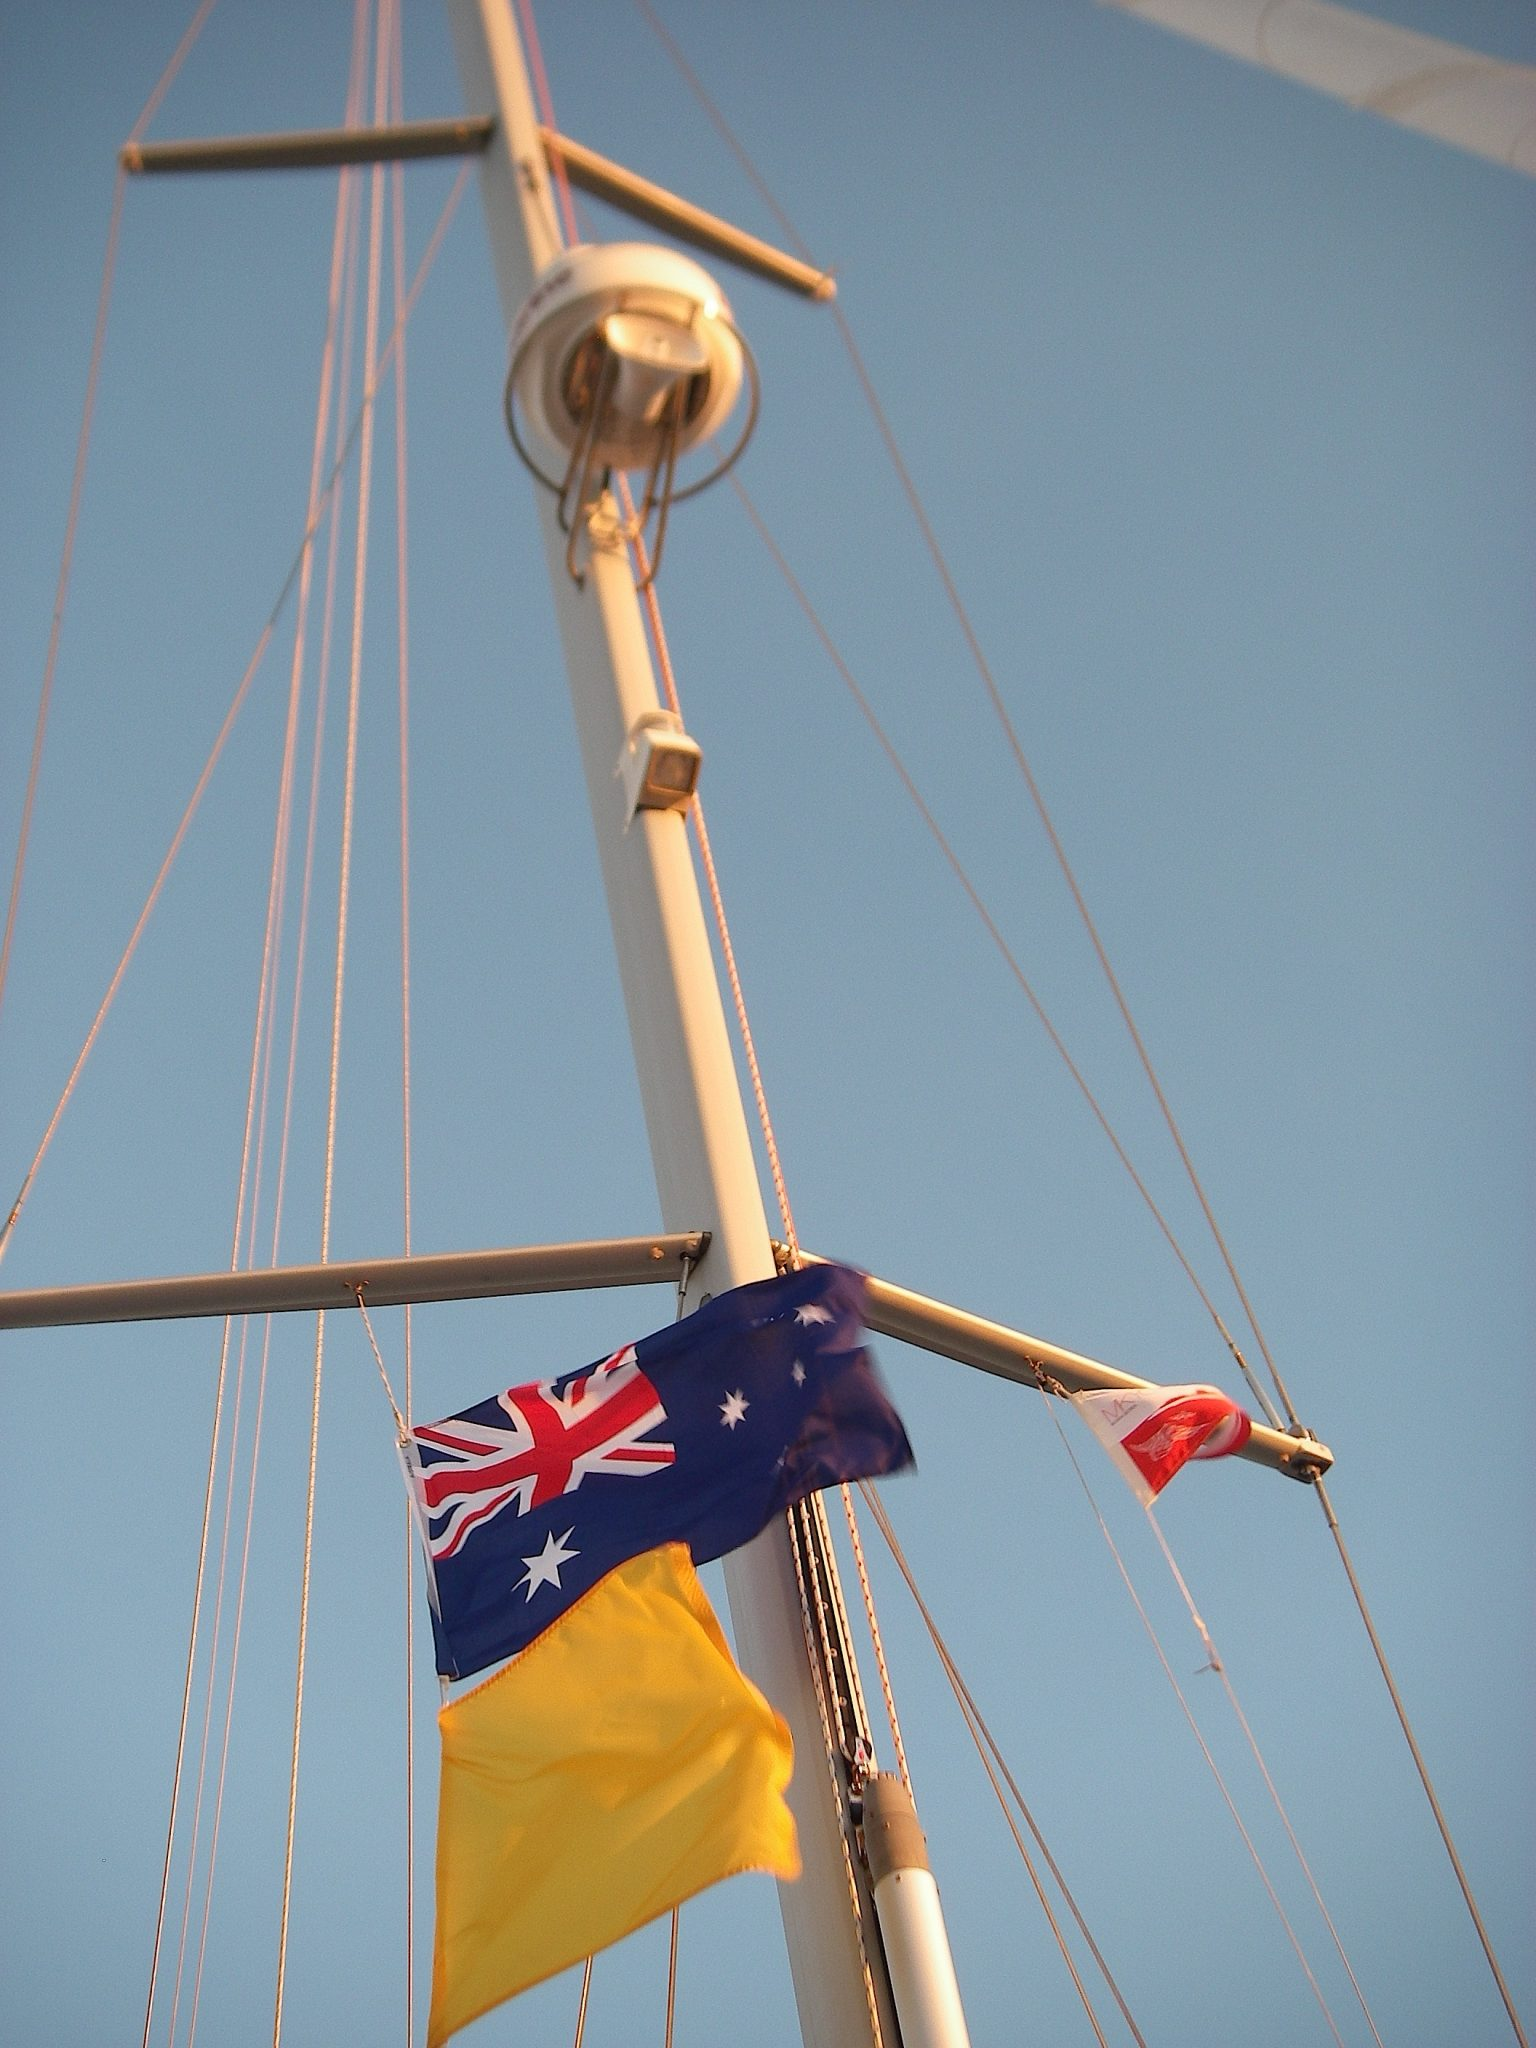 68-while-at-the-australian-customs-dock-in-mackay-joyfuls-australian-courtesy-and-quarantine-flags-flew-with-the-maikai-yacht-club-pennant-bora-bora